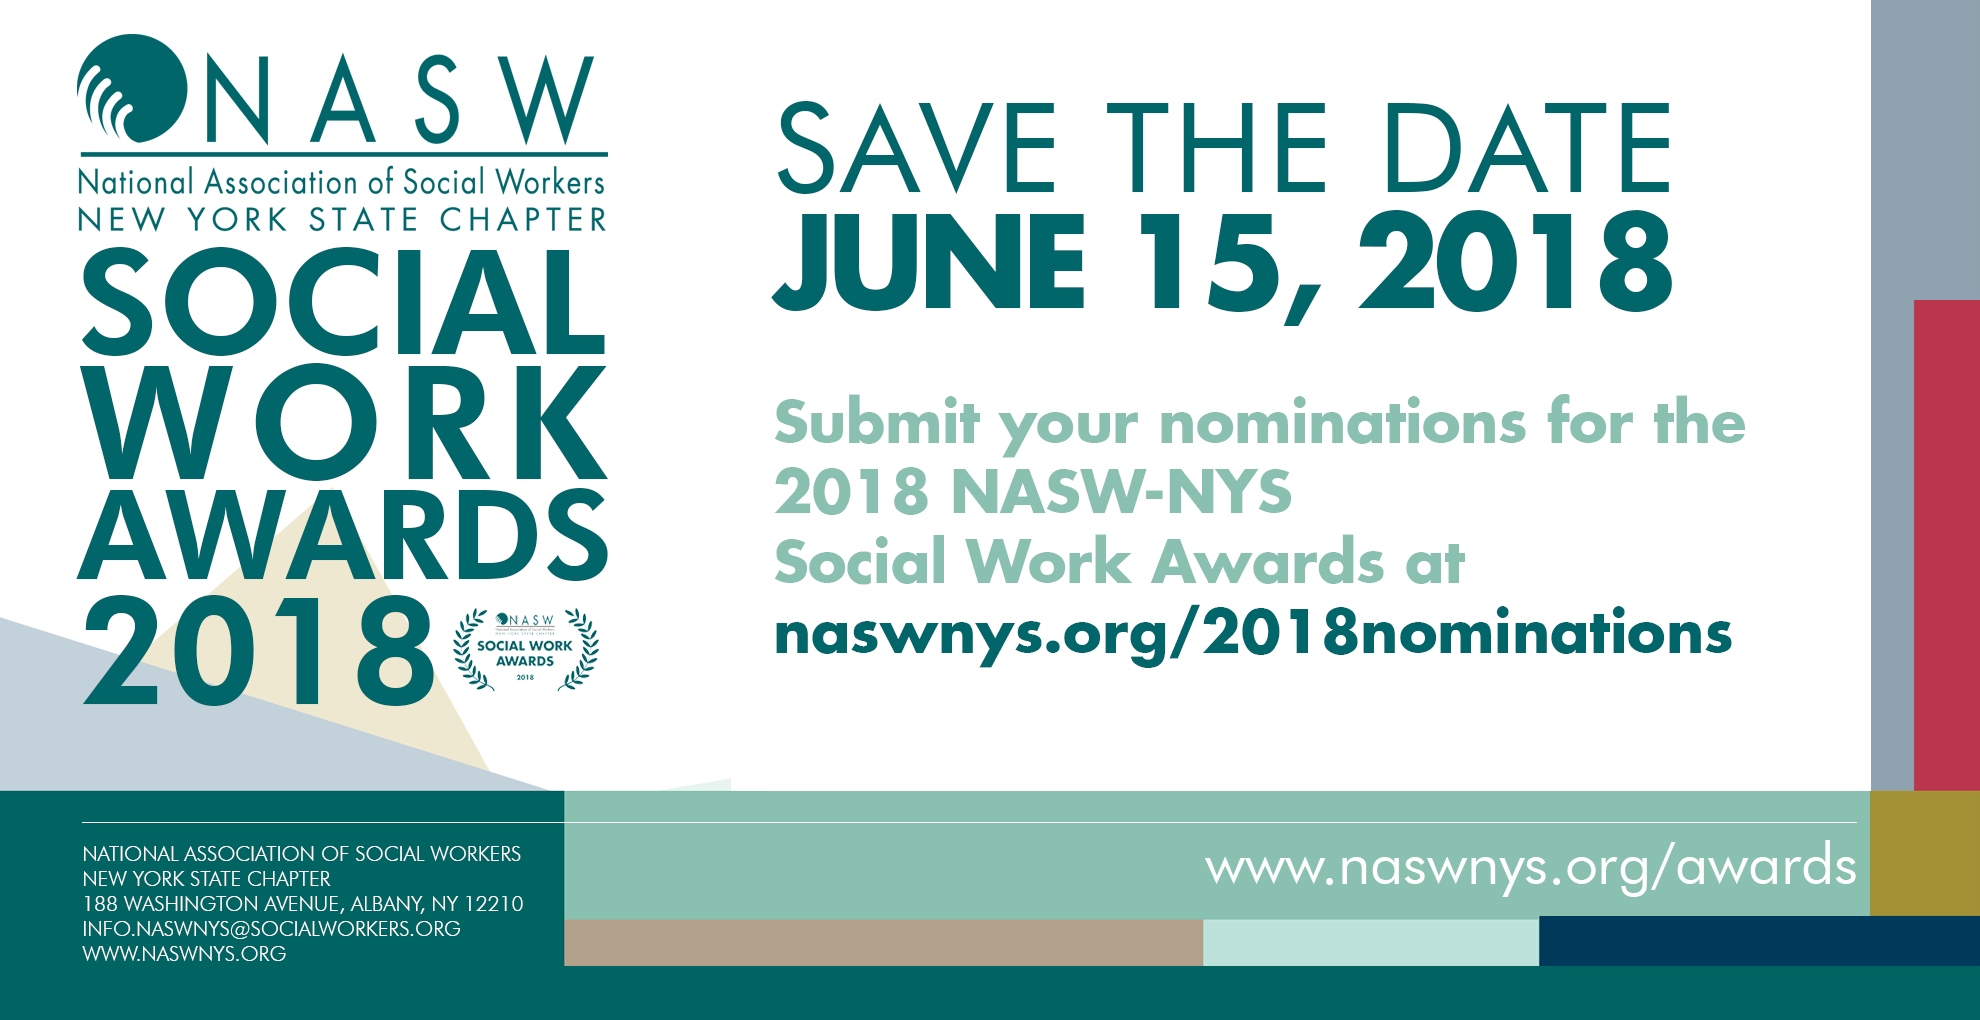 Submit nominations for the 2018 NASW-NYS Social Work Awards! - NASW-NYS